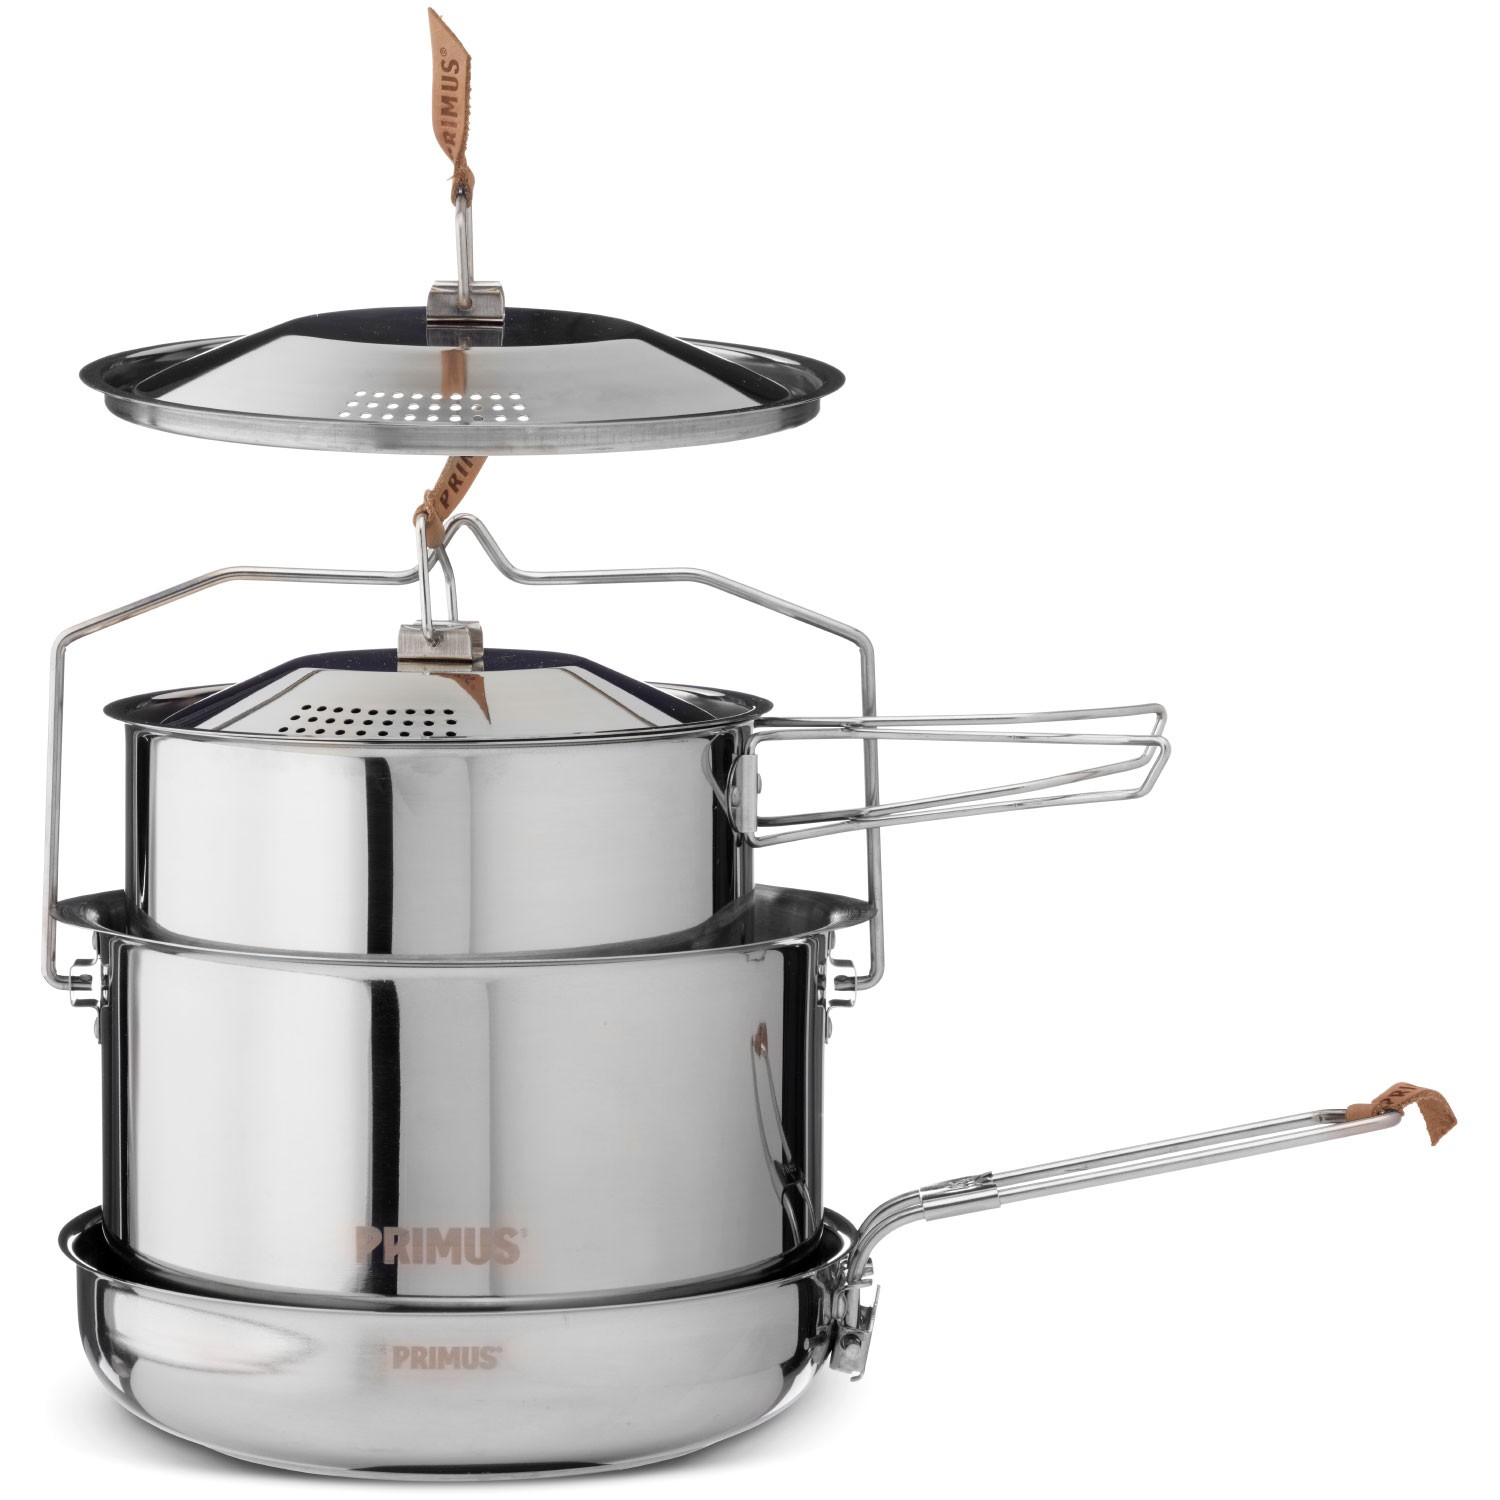 The Primus Campfire Stainless Steel Cookset - Large